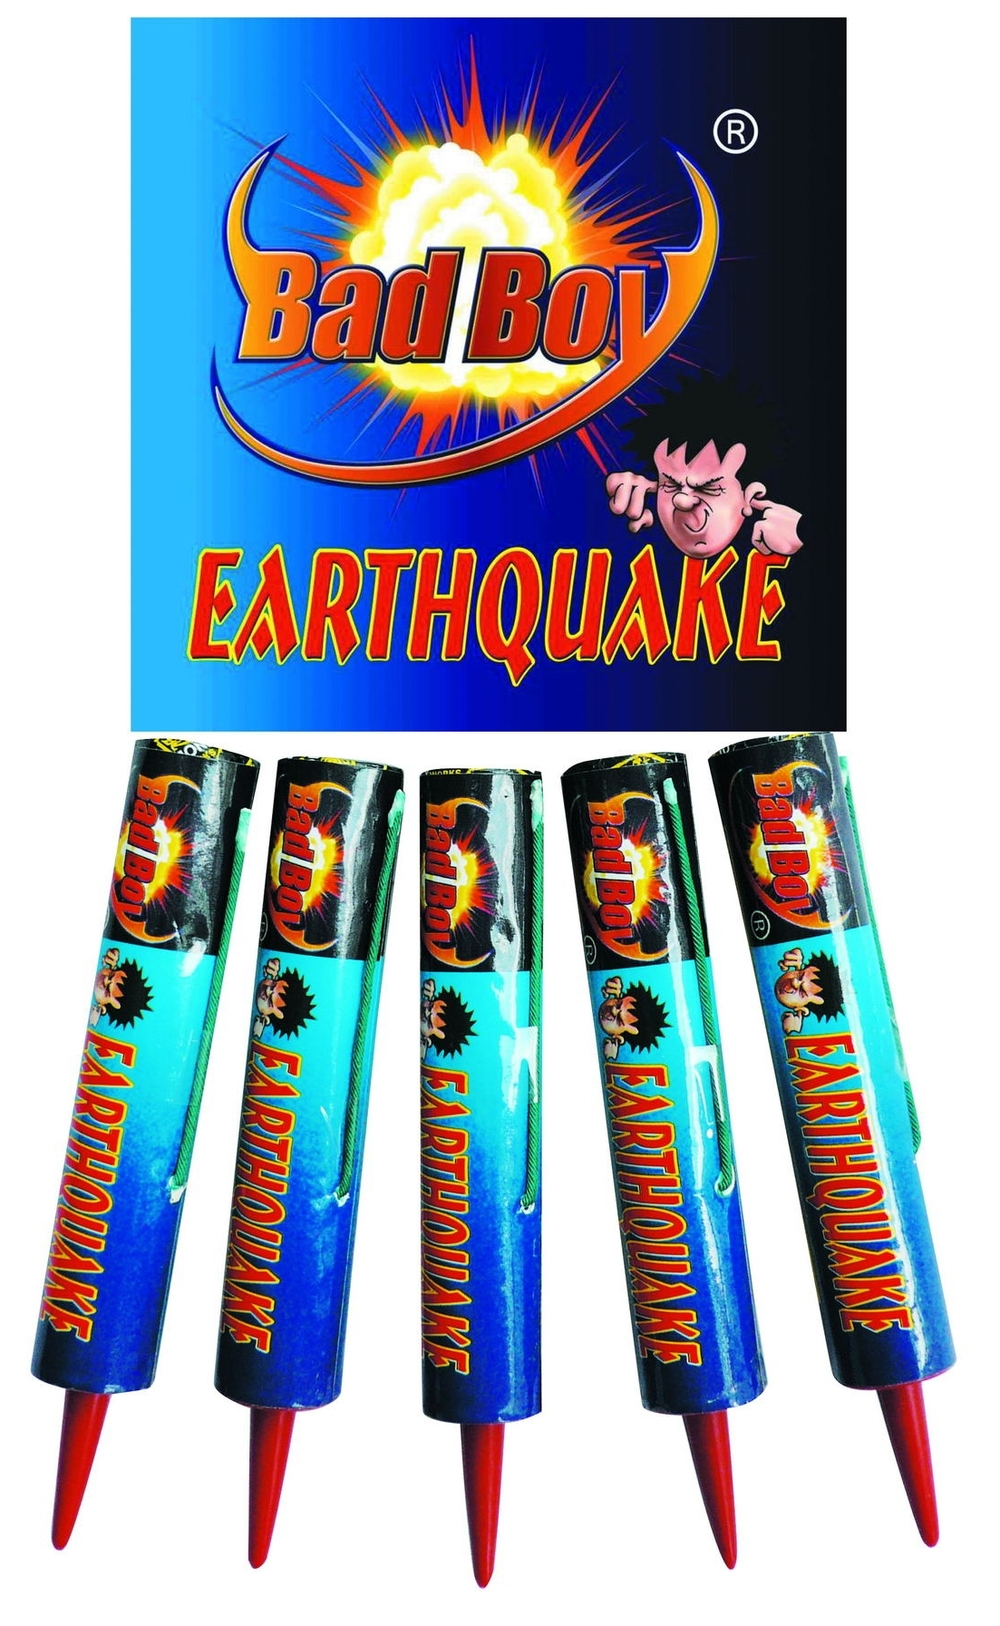 Earthquake 5pk - RRP £5.99